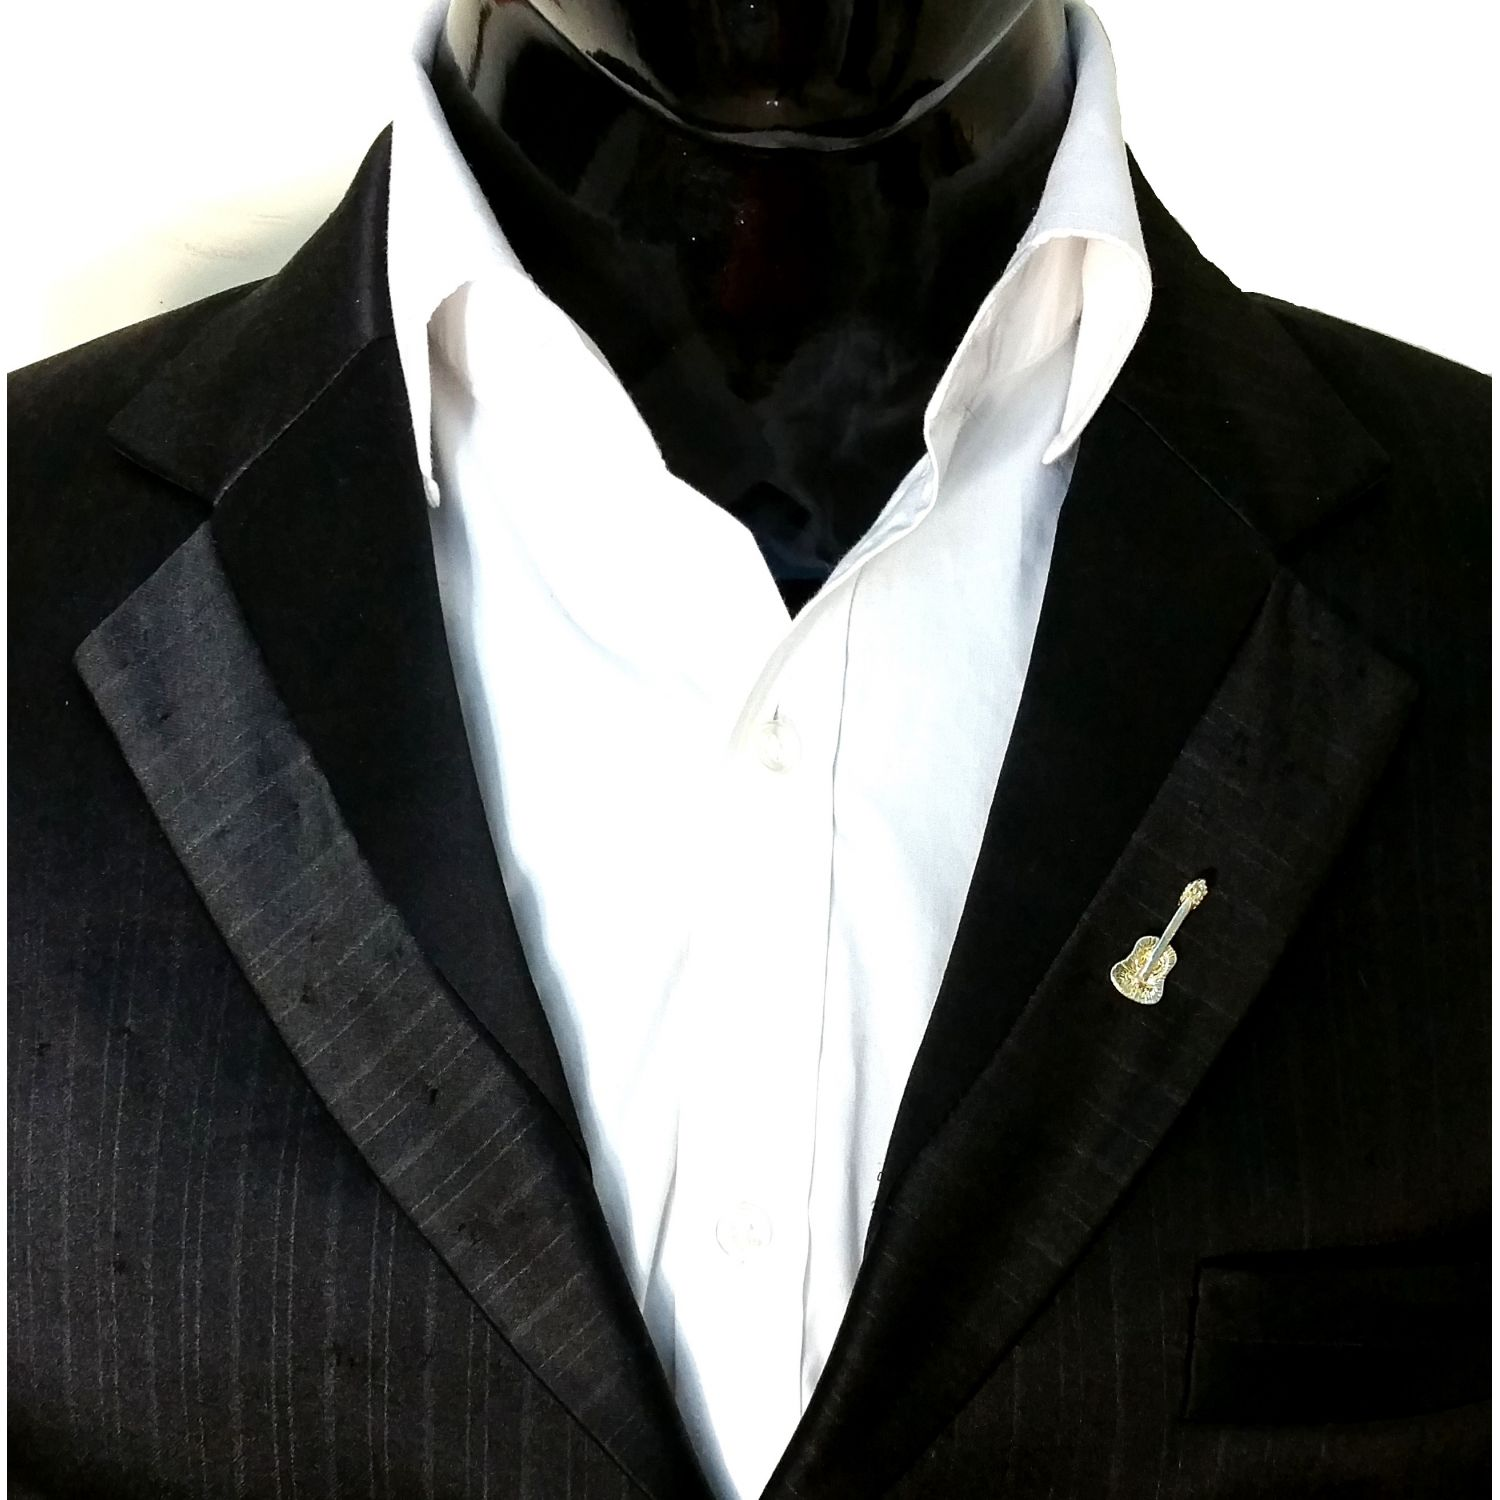 tie silver clasp bar clip gold pin product men collar cravat necktie brooch skinny mens suit accessories